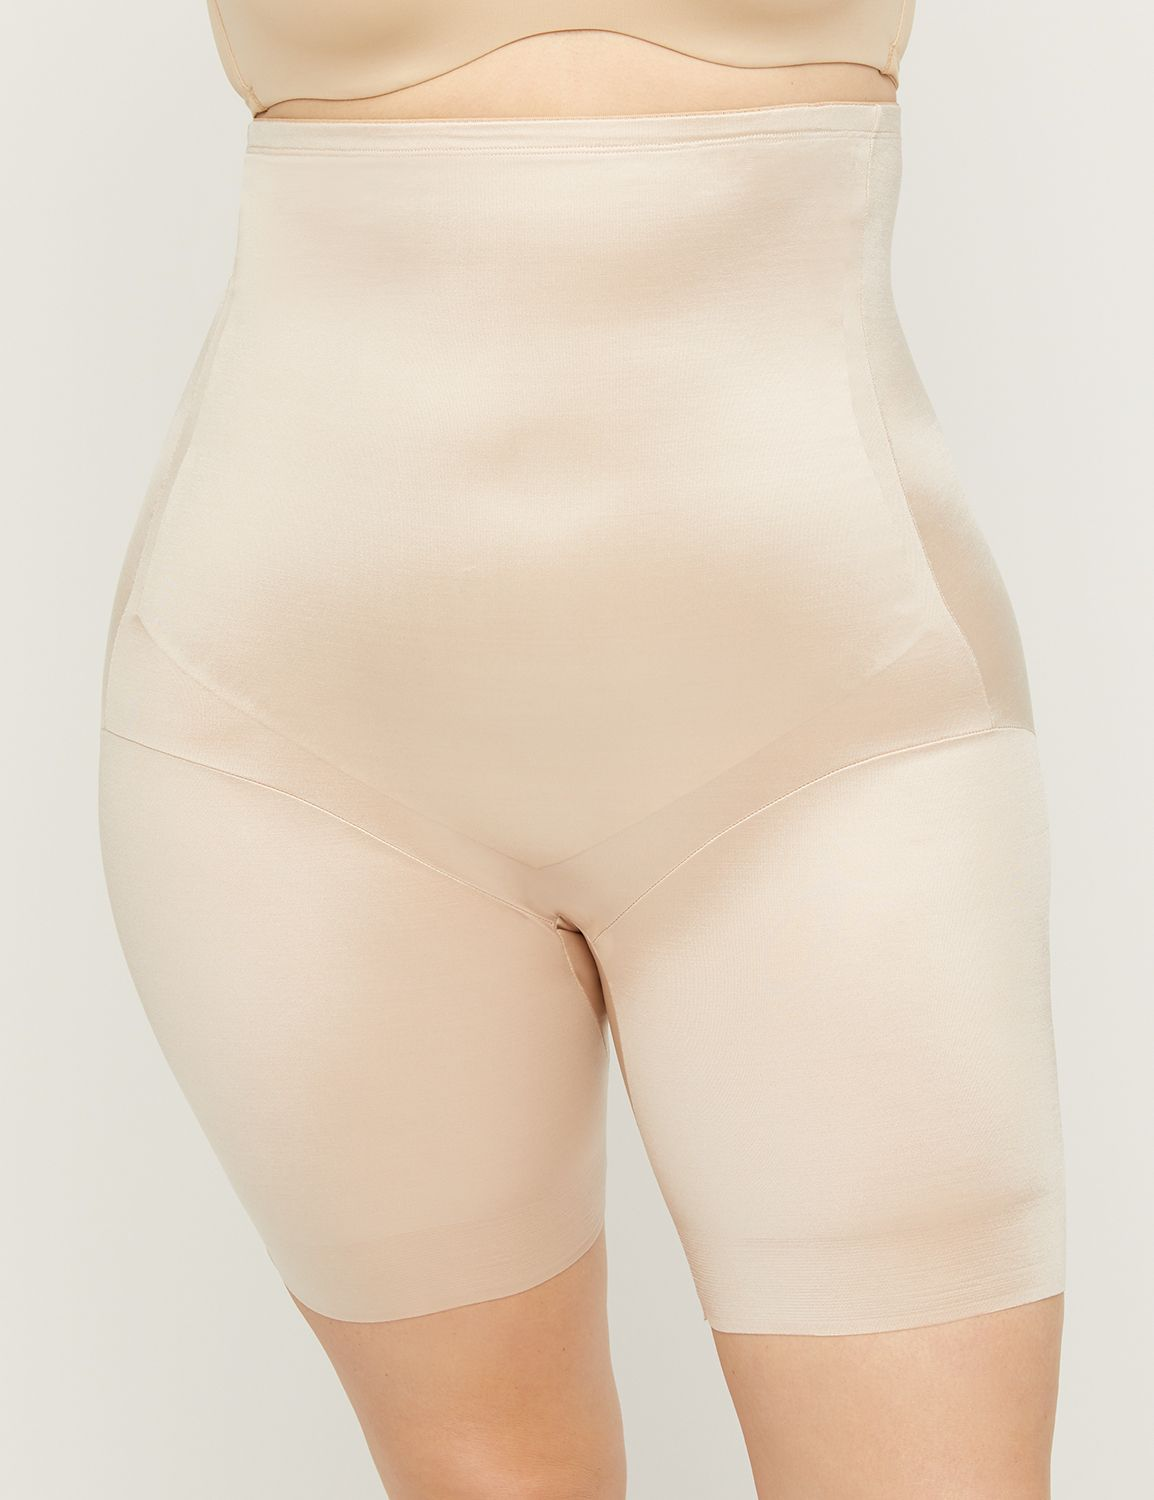 Firm Control Hi-Waist Thigh Shaper Firm Control Hi-Waist Thigh Slimmer MP-200822606